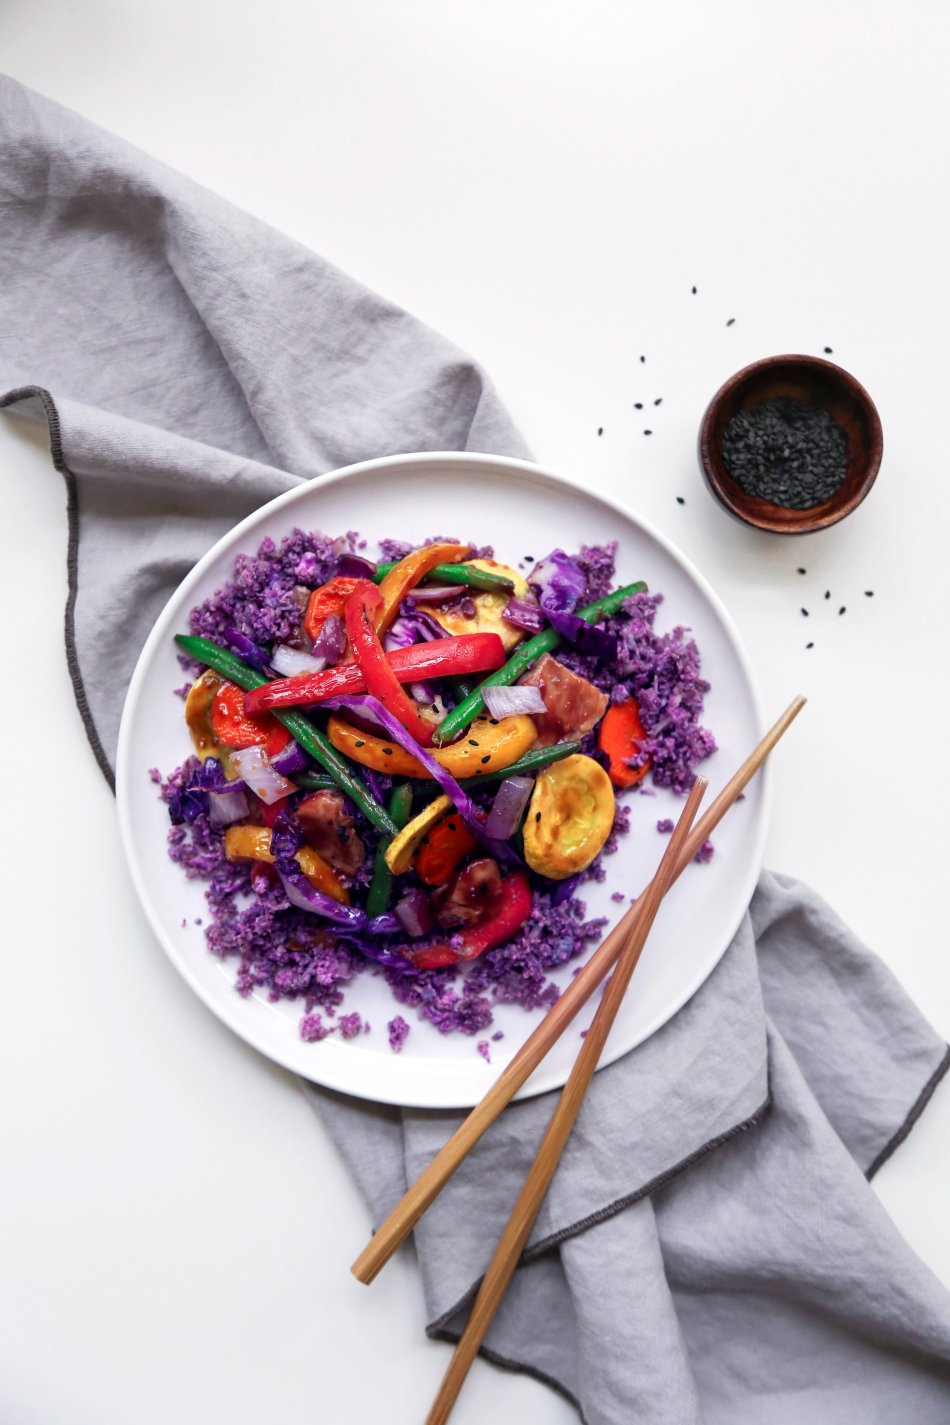 Teriyaki Stir-Fry with Cauliflower Rice | Whole30/paleo friendly. Can easily be made vegan/vegetarian.